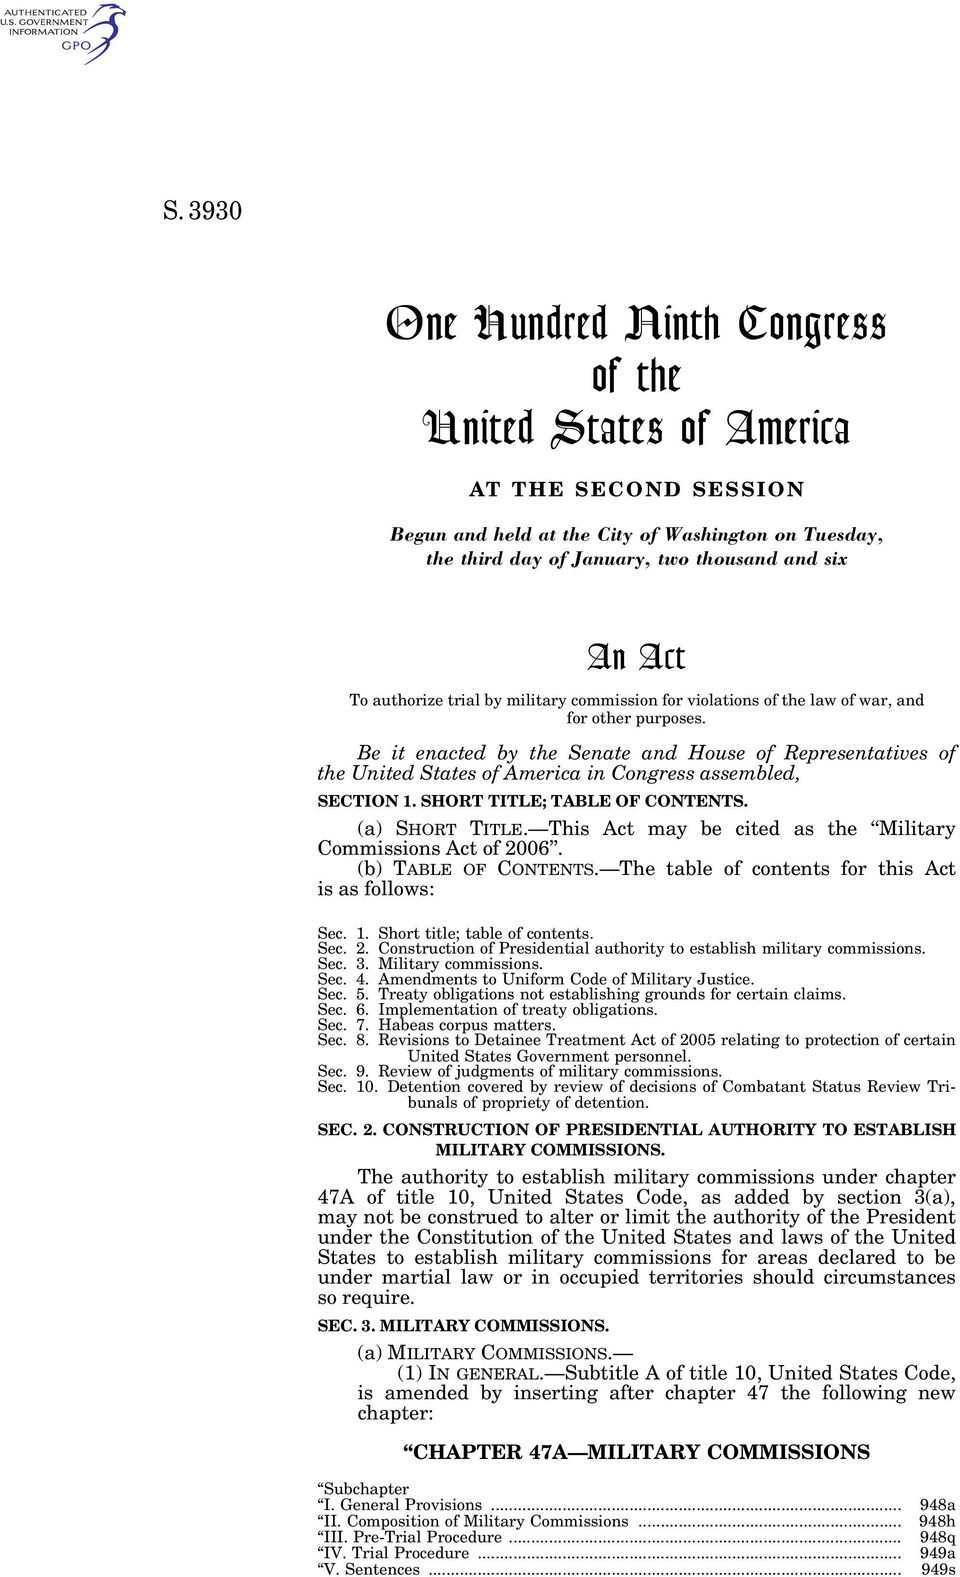 Be it enacted by the Senate and House of Representatives of the United States of America in Congress assembled, SECTION 1. SHORT TITLE; TABLE OF CONTENTS. (a) SHORT TITLE.